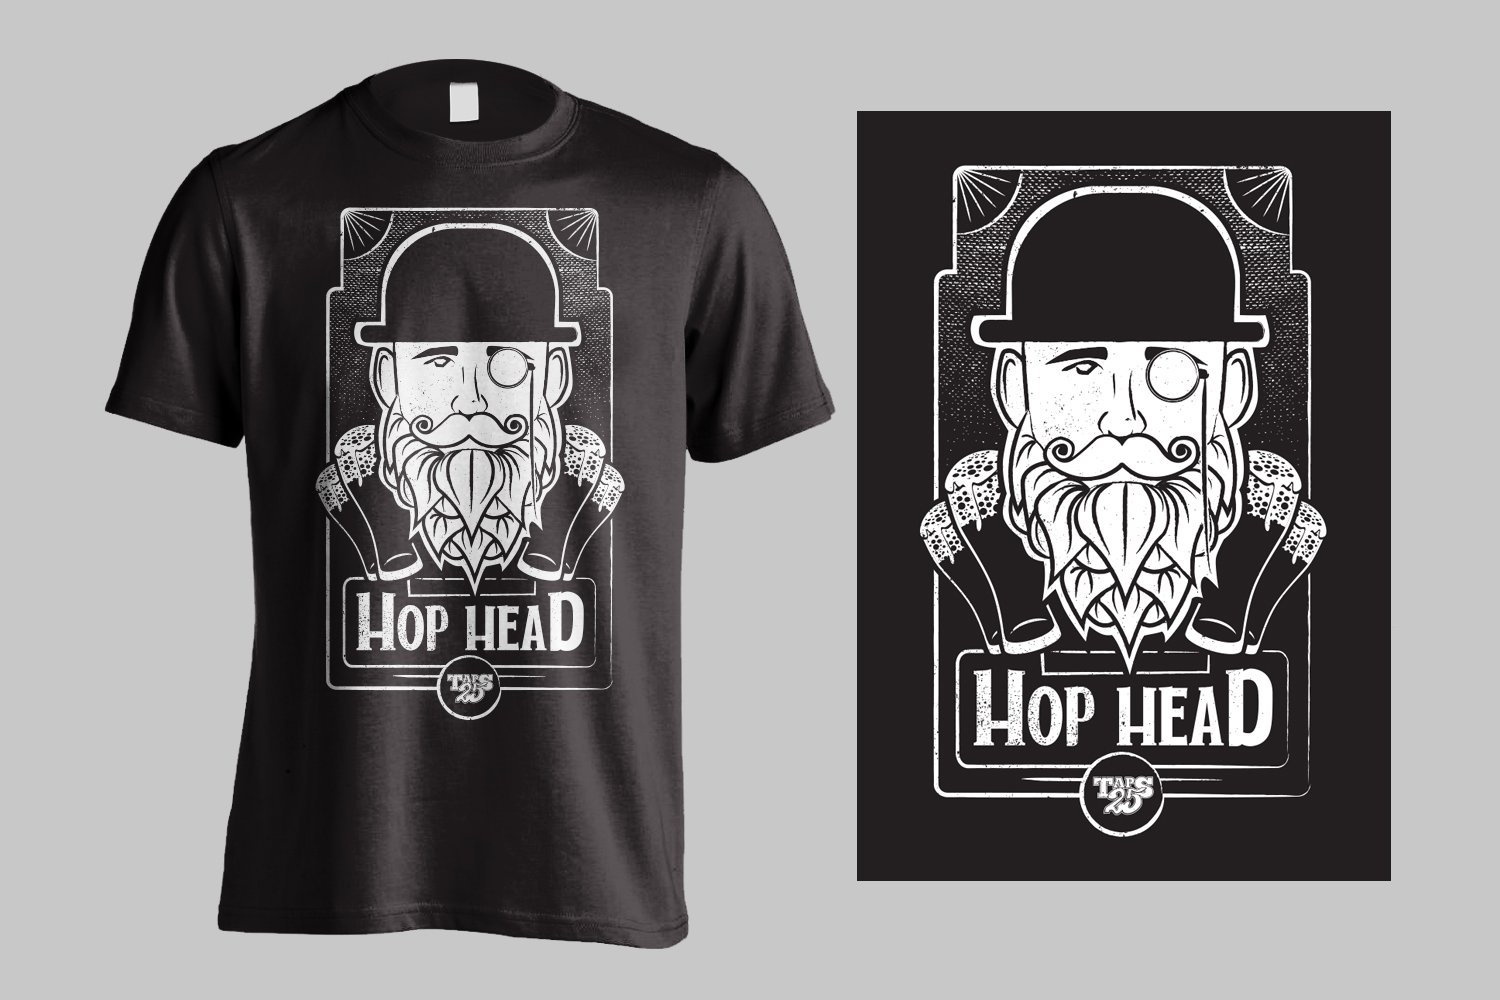 Mens Hop Head Shirt Design